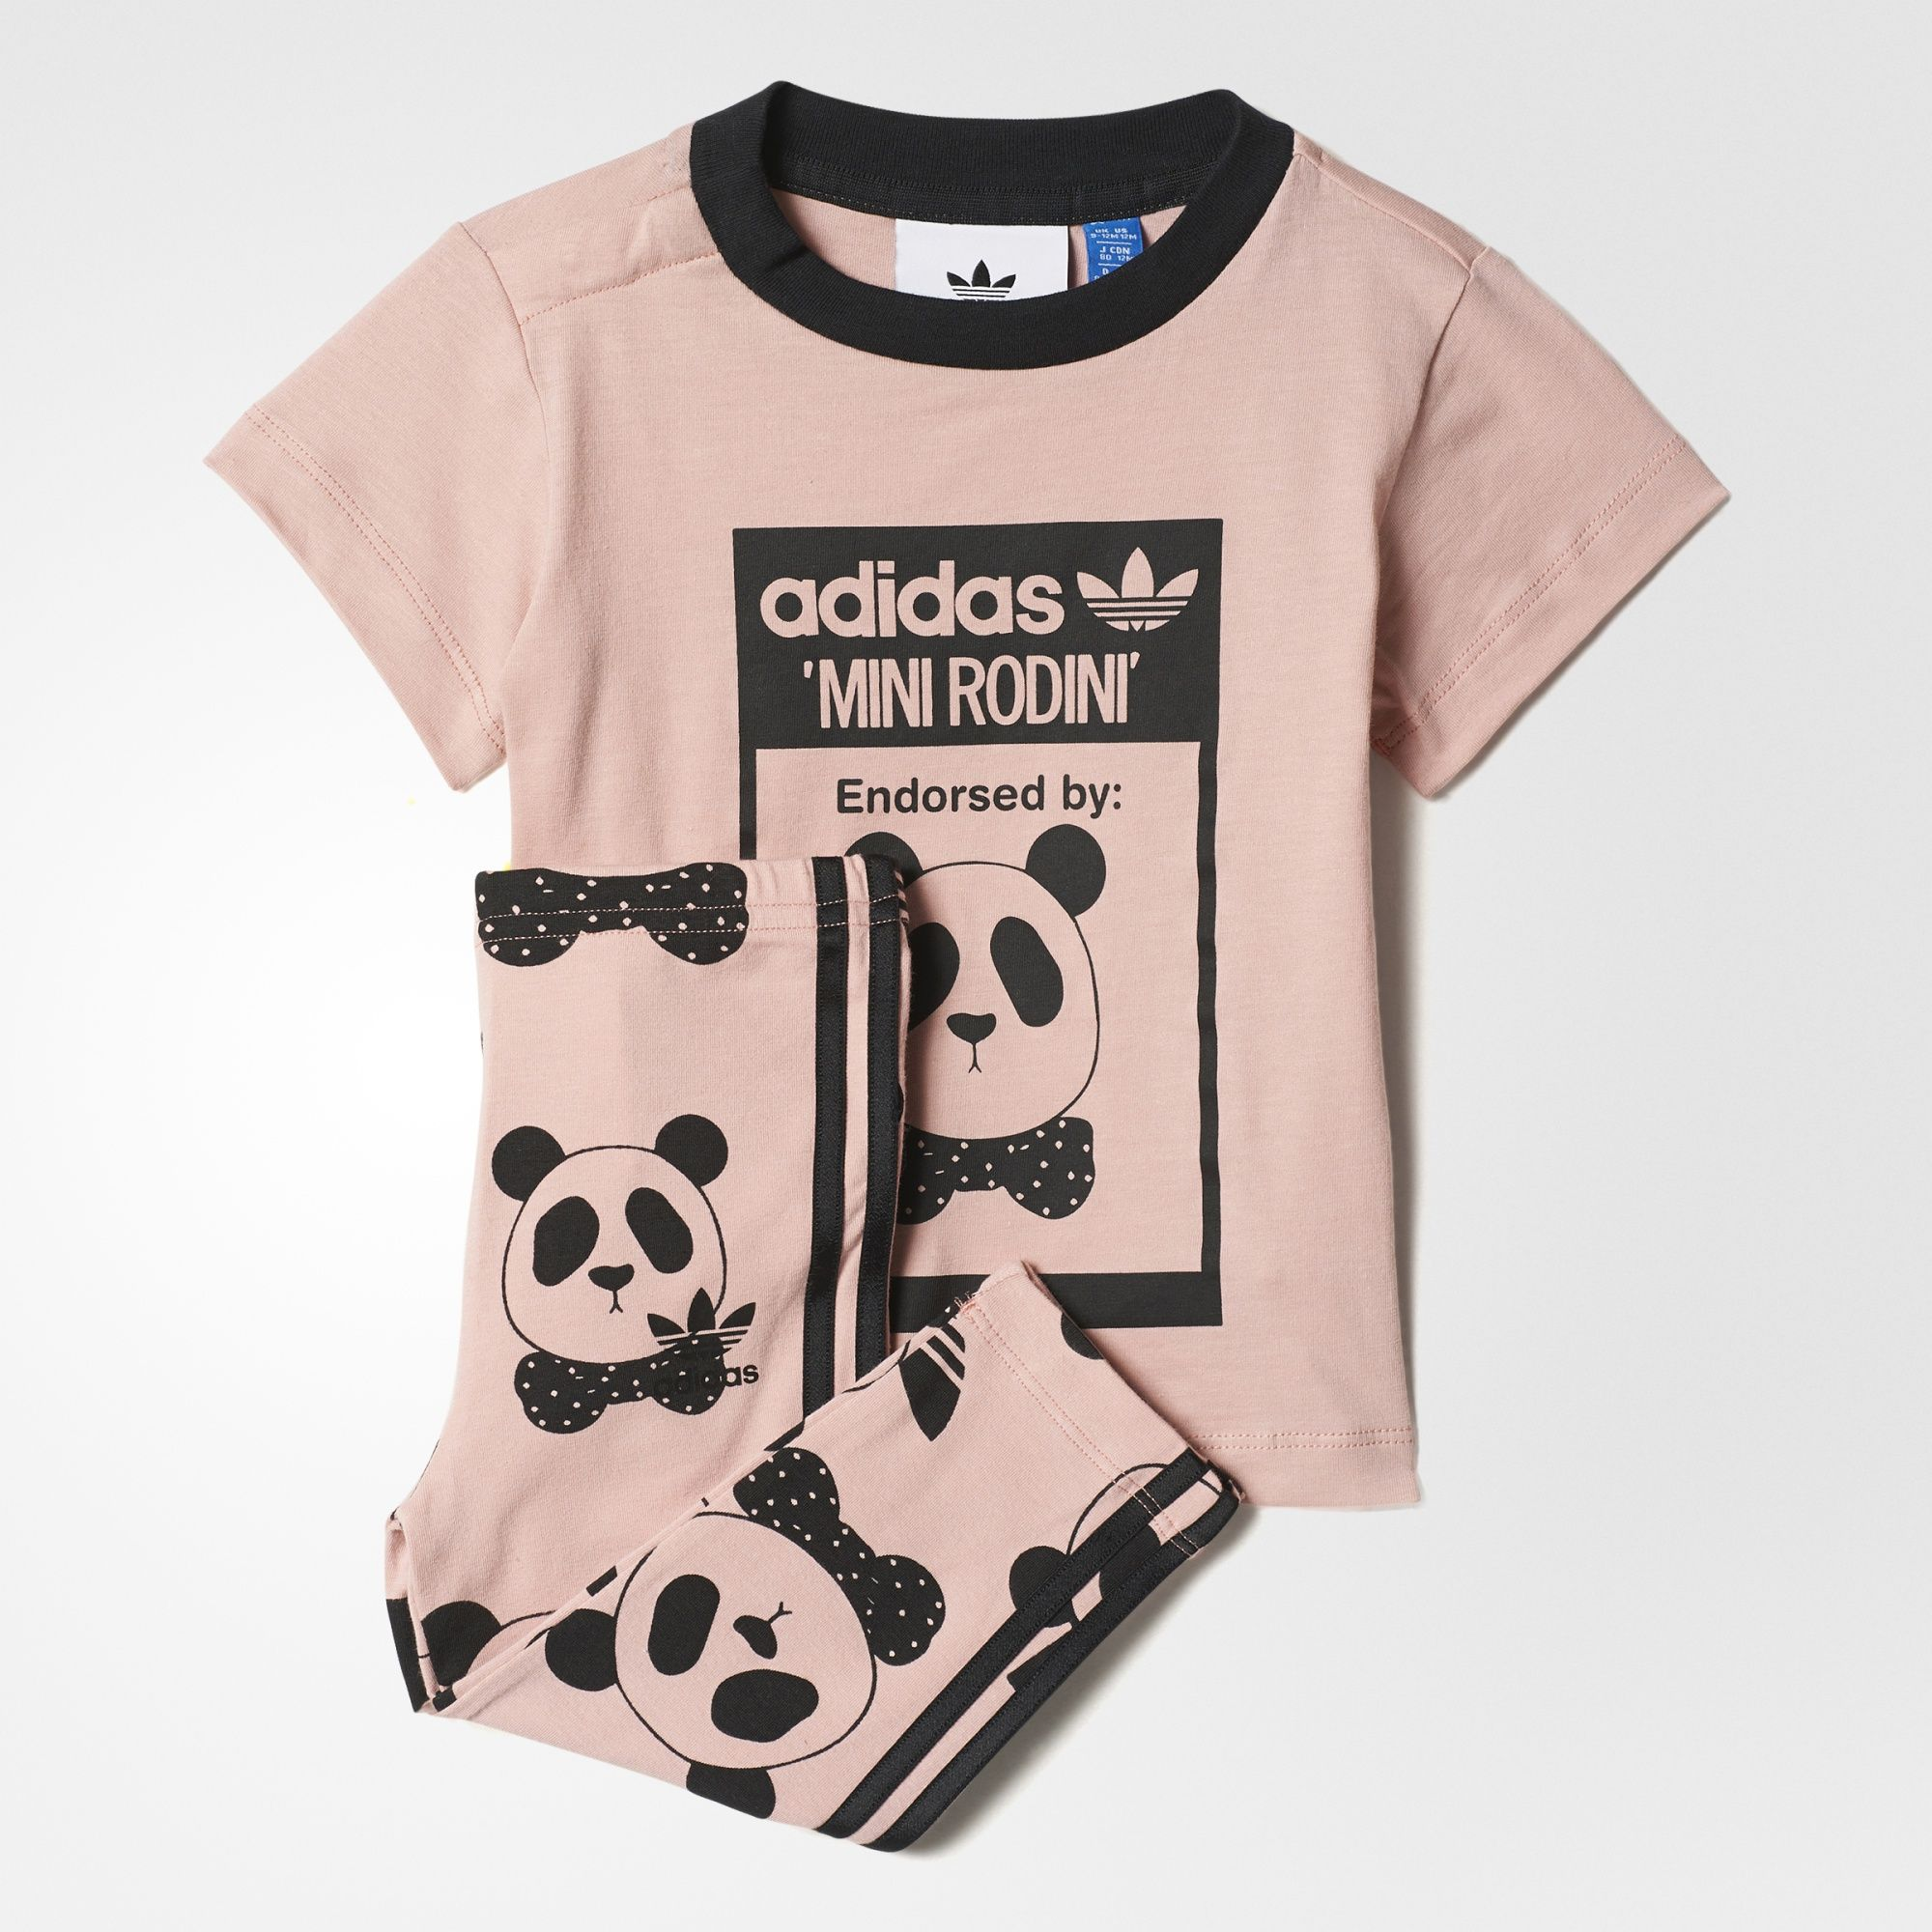 e5a6711710e8f This toddler girls  set mixes adidas Originals style with a fun print by  Swedish brand Mini Rodini. The leggings have 3-Stripes and a playful  allover print.